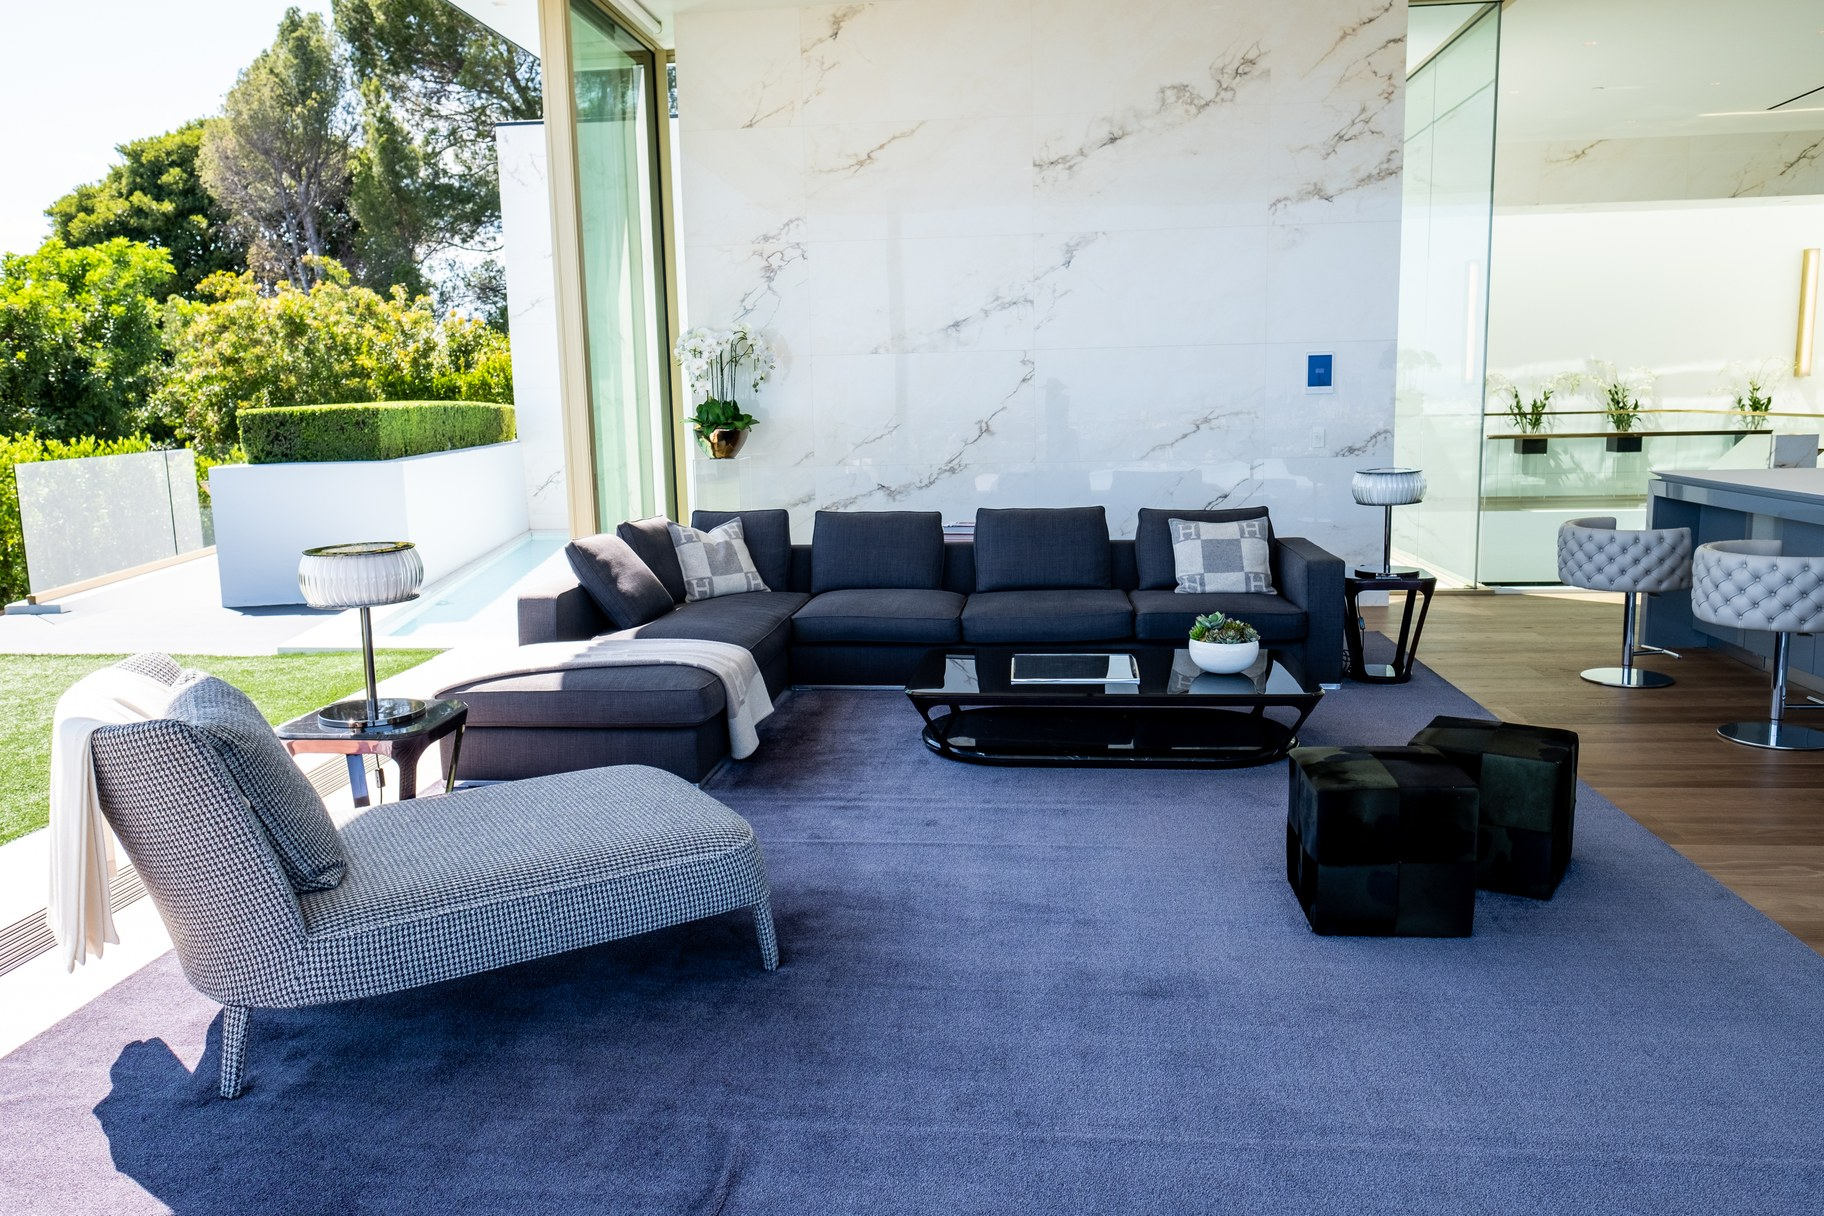 A lounge area next to the patio and kitchen.